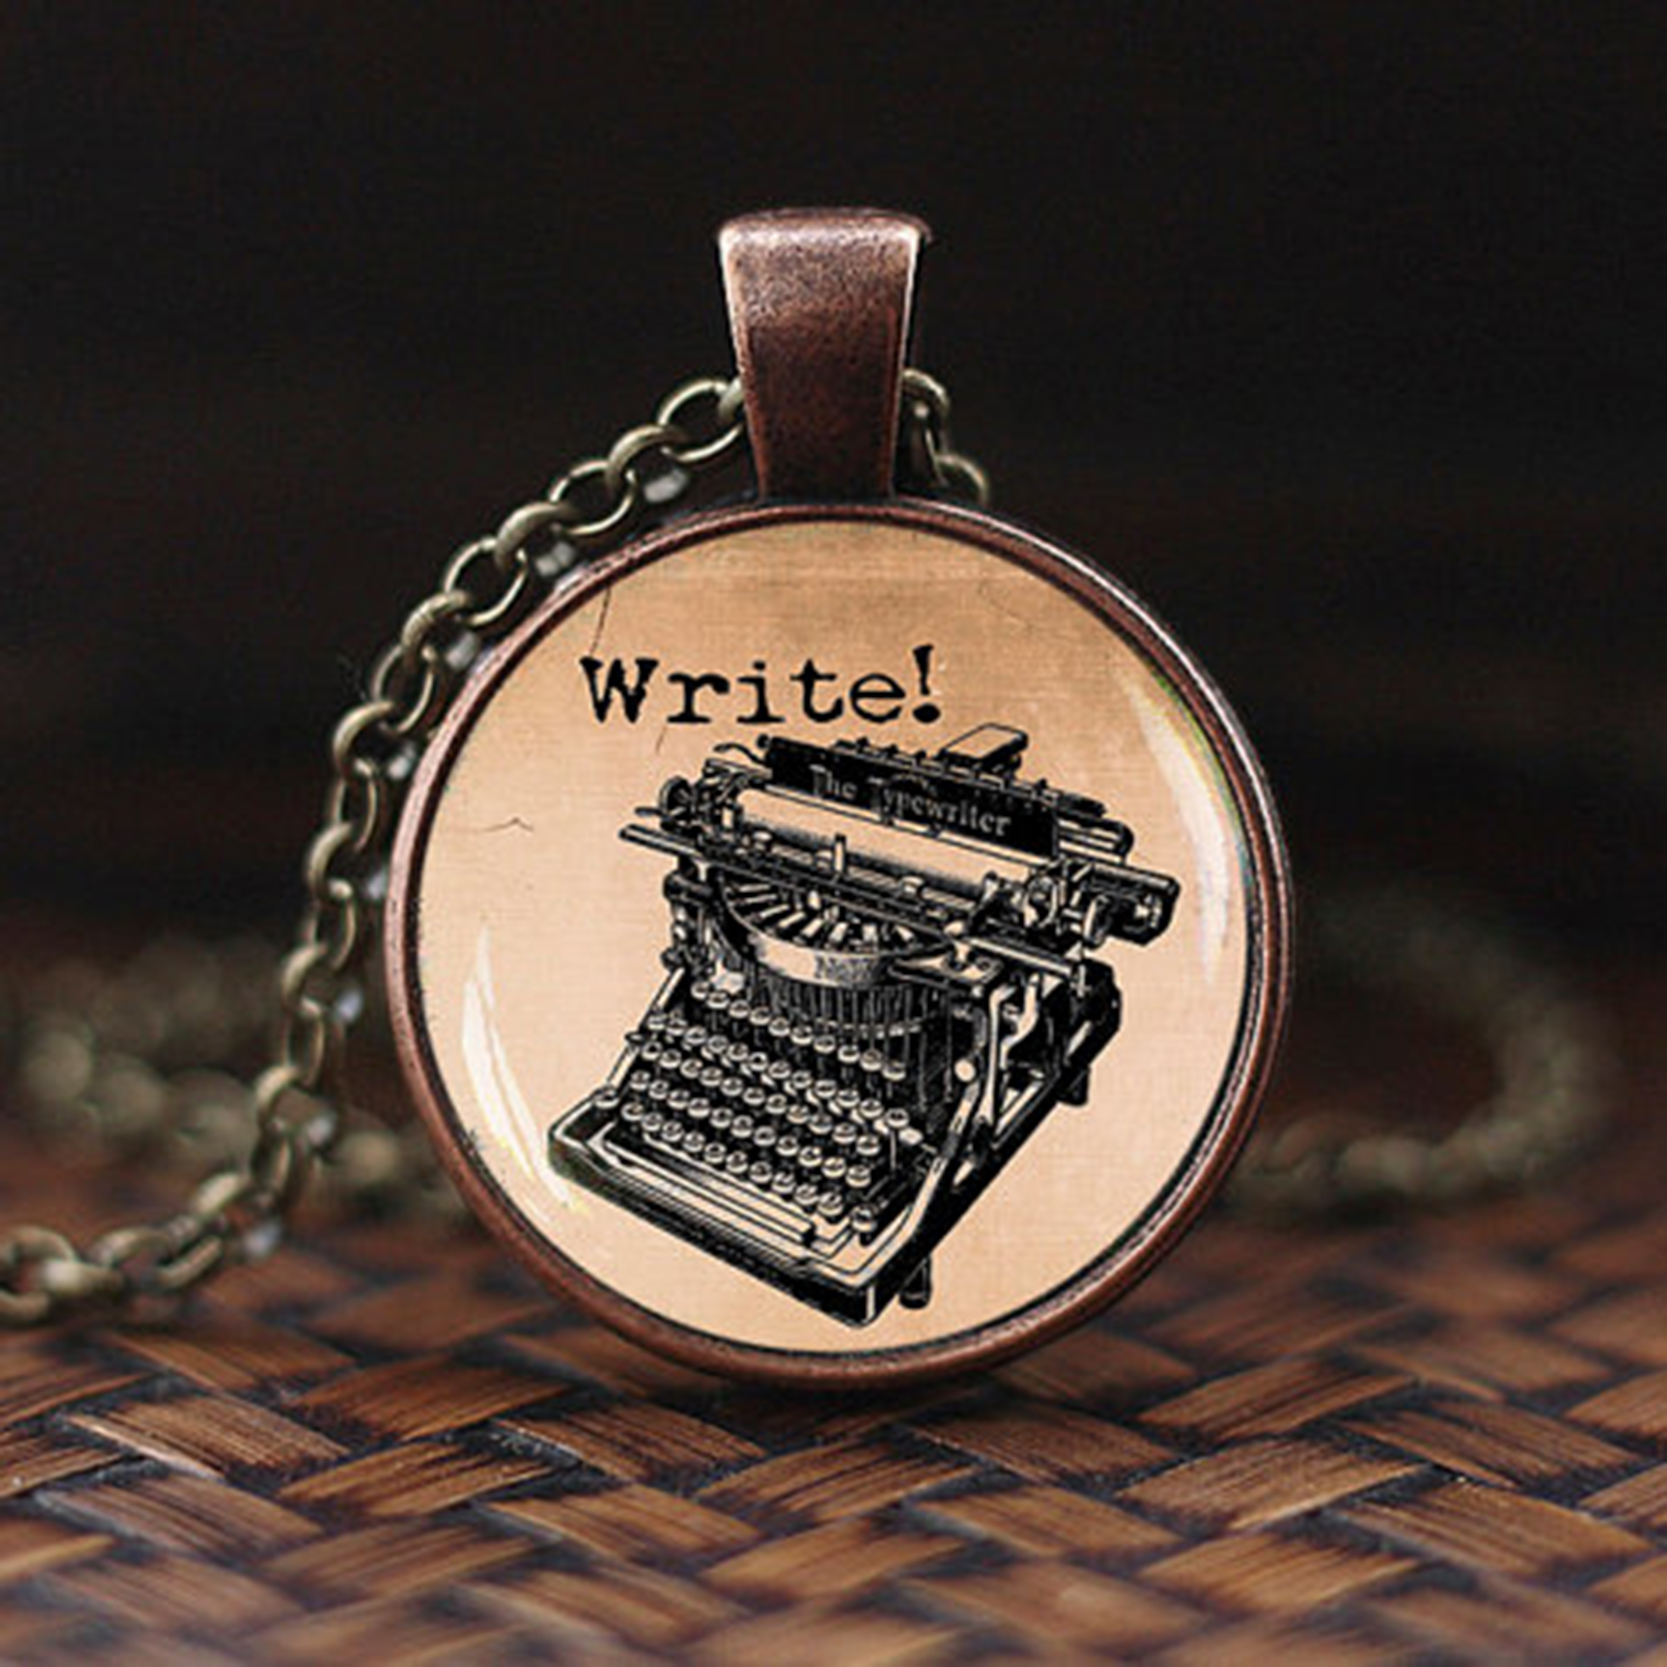 Family Decor Vintage Typewriter Pendant Necklace Cabochon Glass Vintage Bronze Chain Necklace Jewelry Handmade